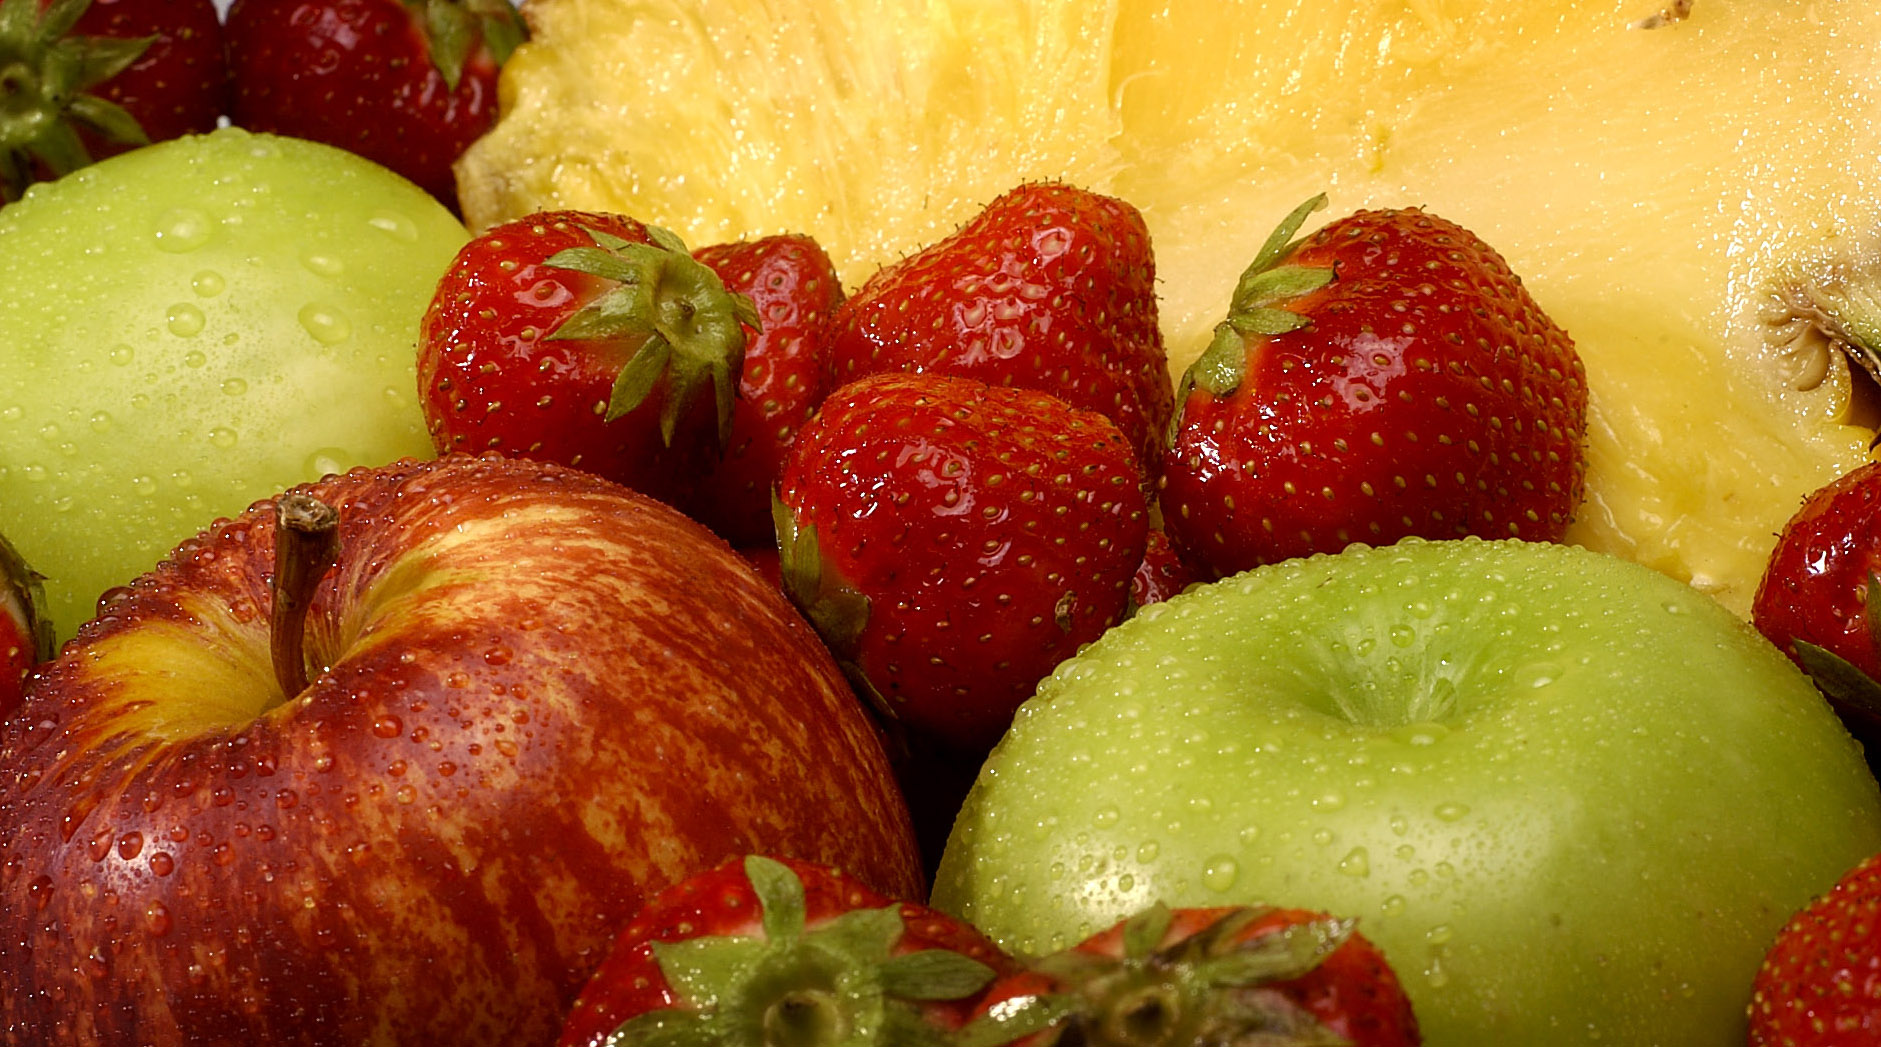 fruit fruitsalade ananas pineapple appel apple aardbei strawberry gezond